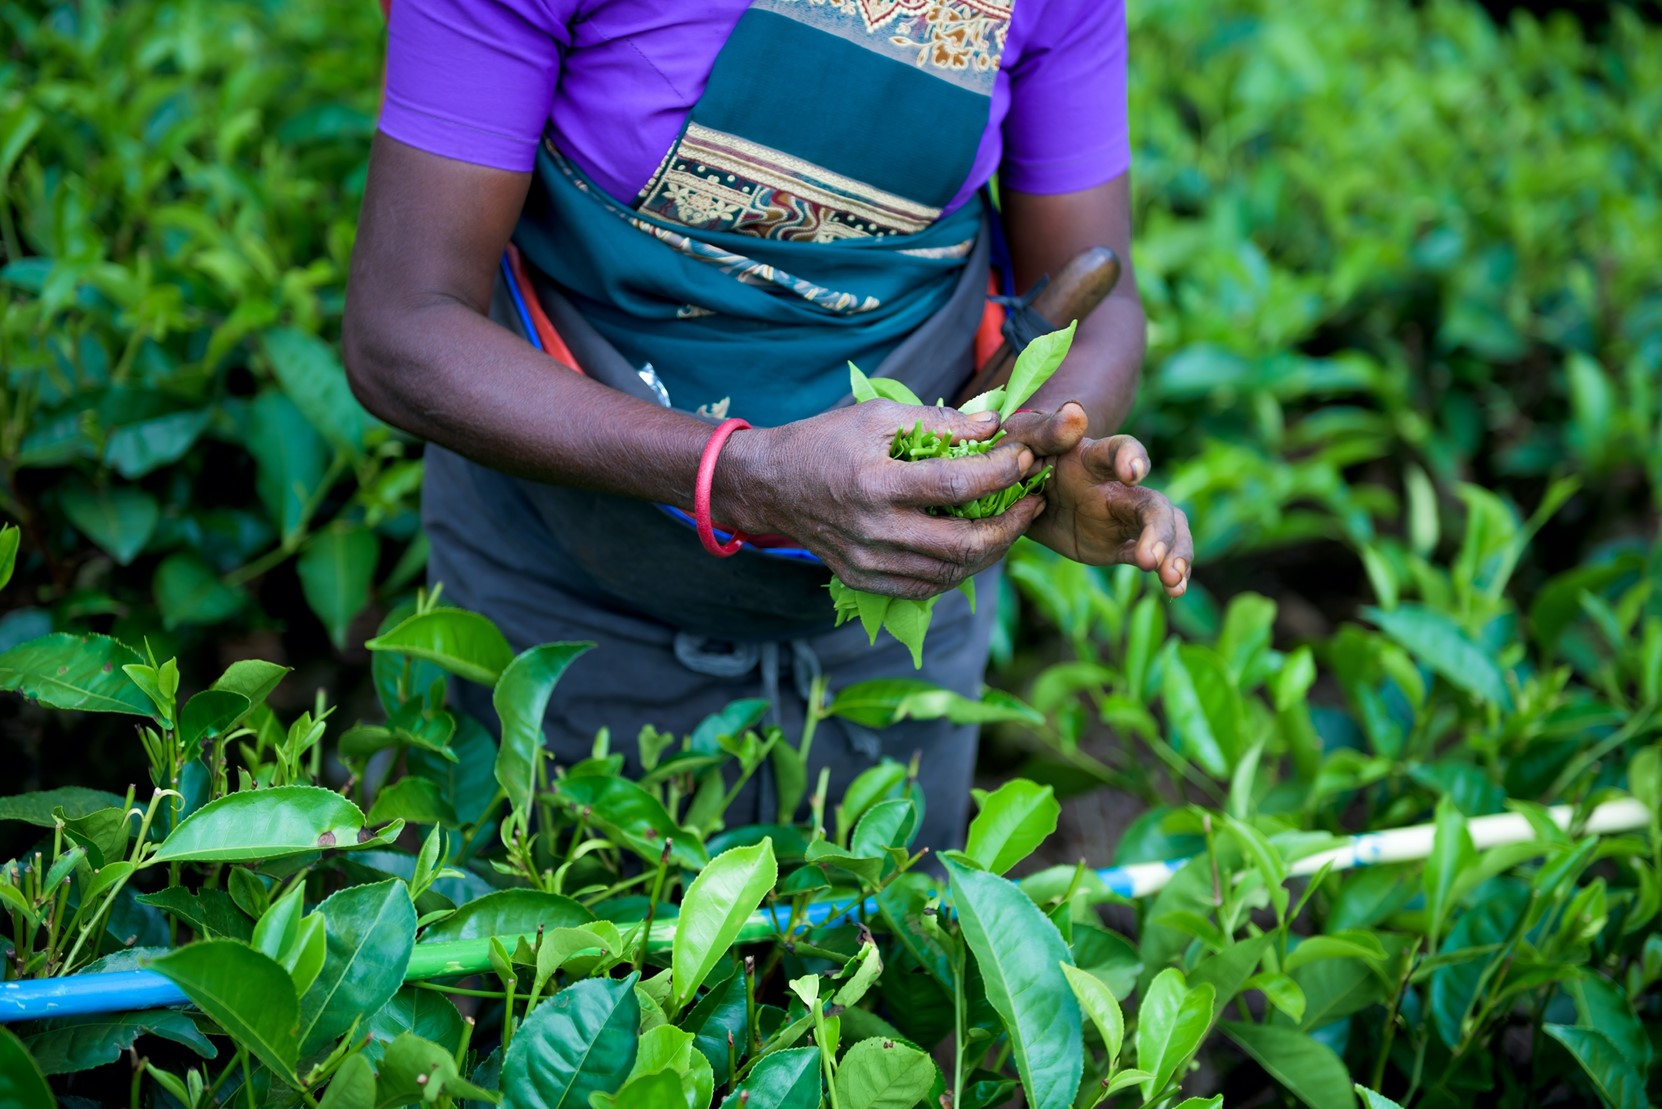 Livelihoods of Farmers in Developing Countries are at Risk